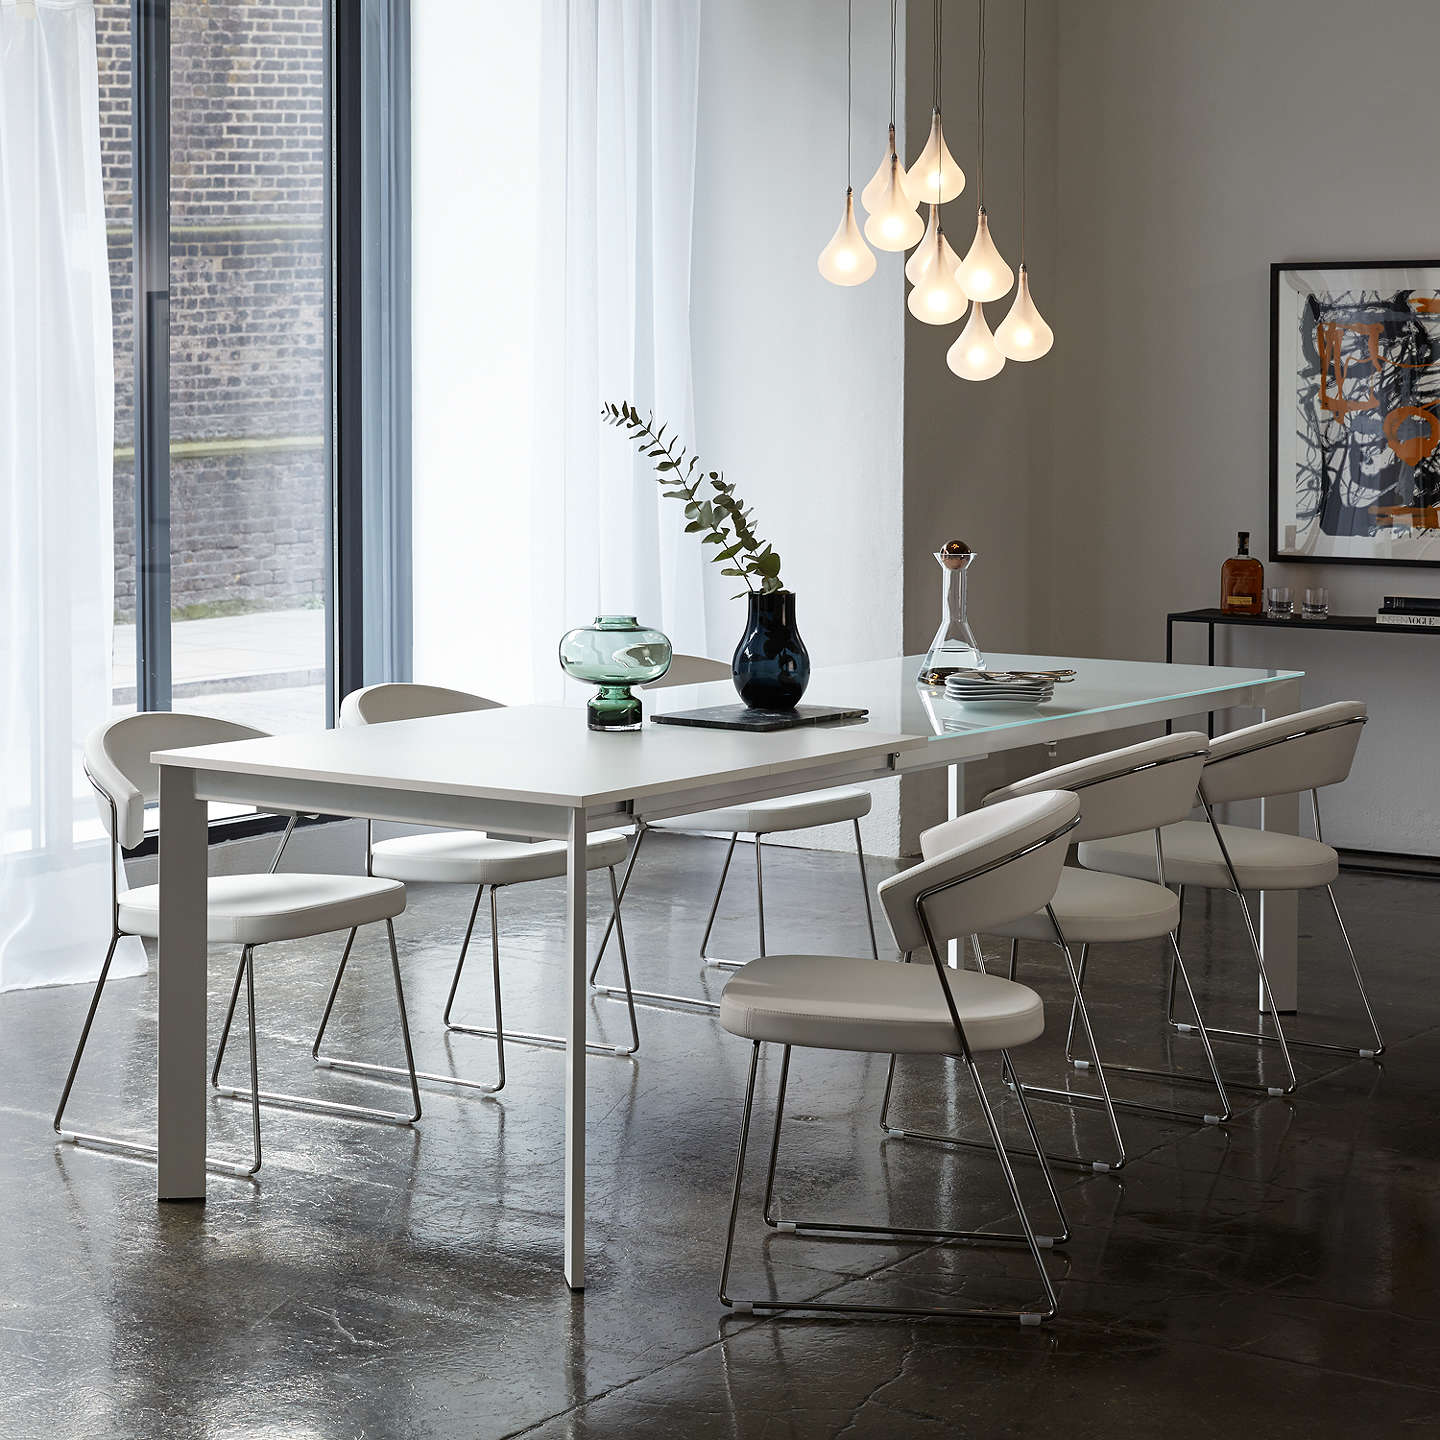 Ideal John Lewis Odyssey 6-10 Seater Glass Top Extending Dining Table at  NJ44